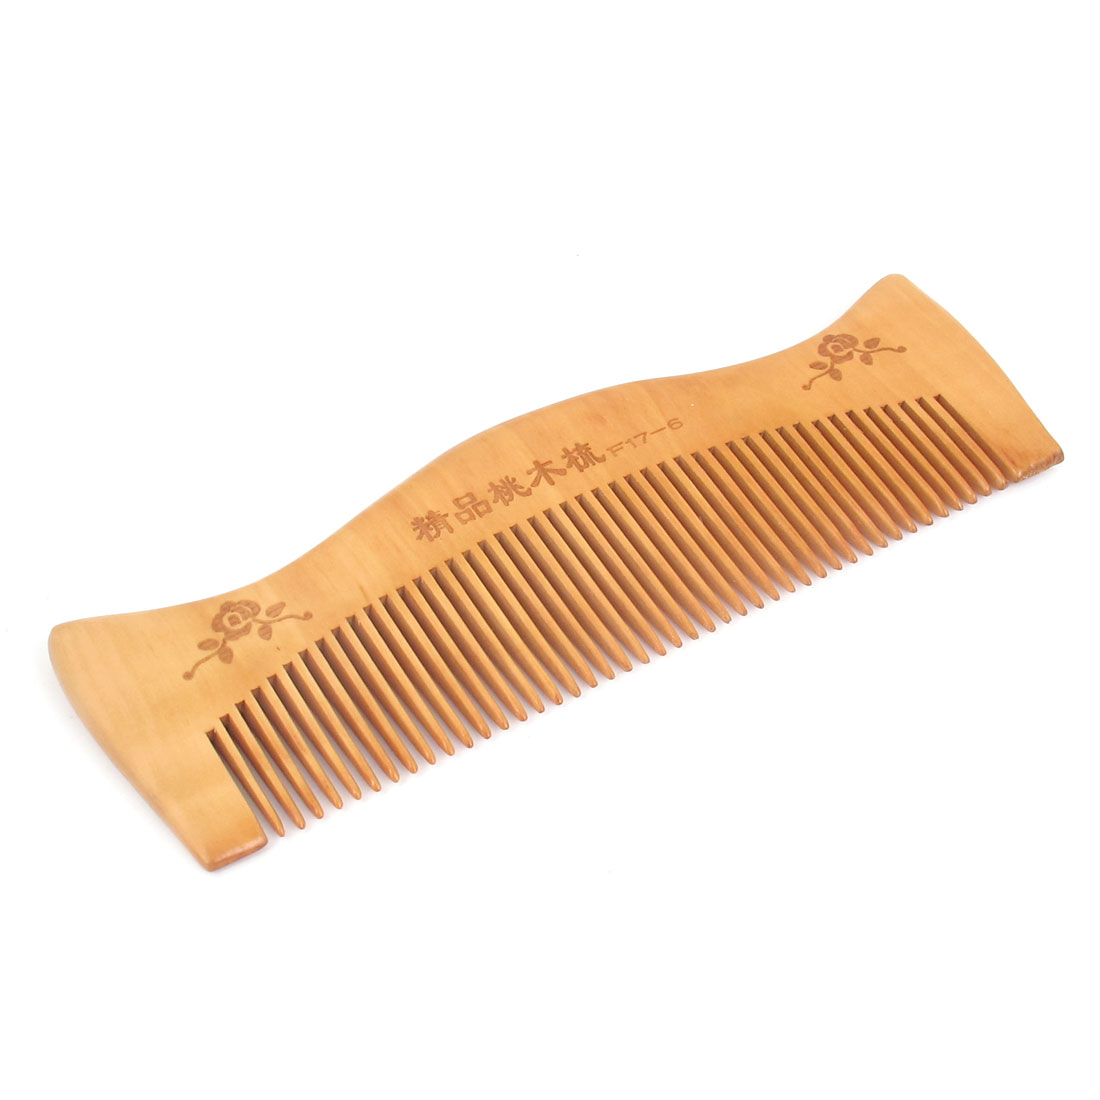 "Ladies Men Wood Healthy Hair Care Toothed Portable Natural Antistatic Lightweight Comb Wooden Color 6.3"" Length"